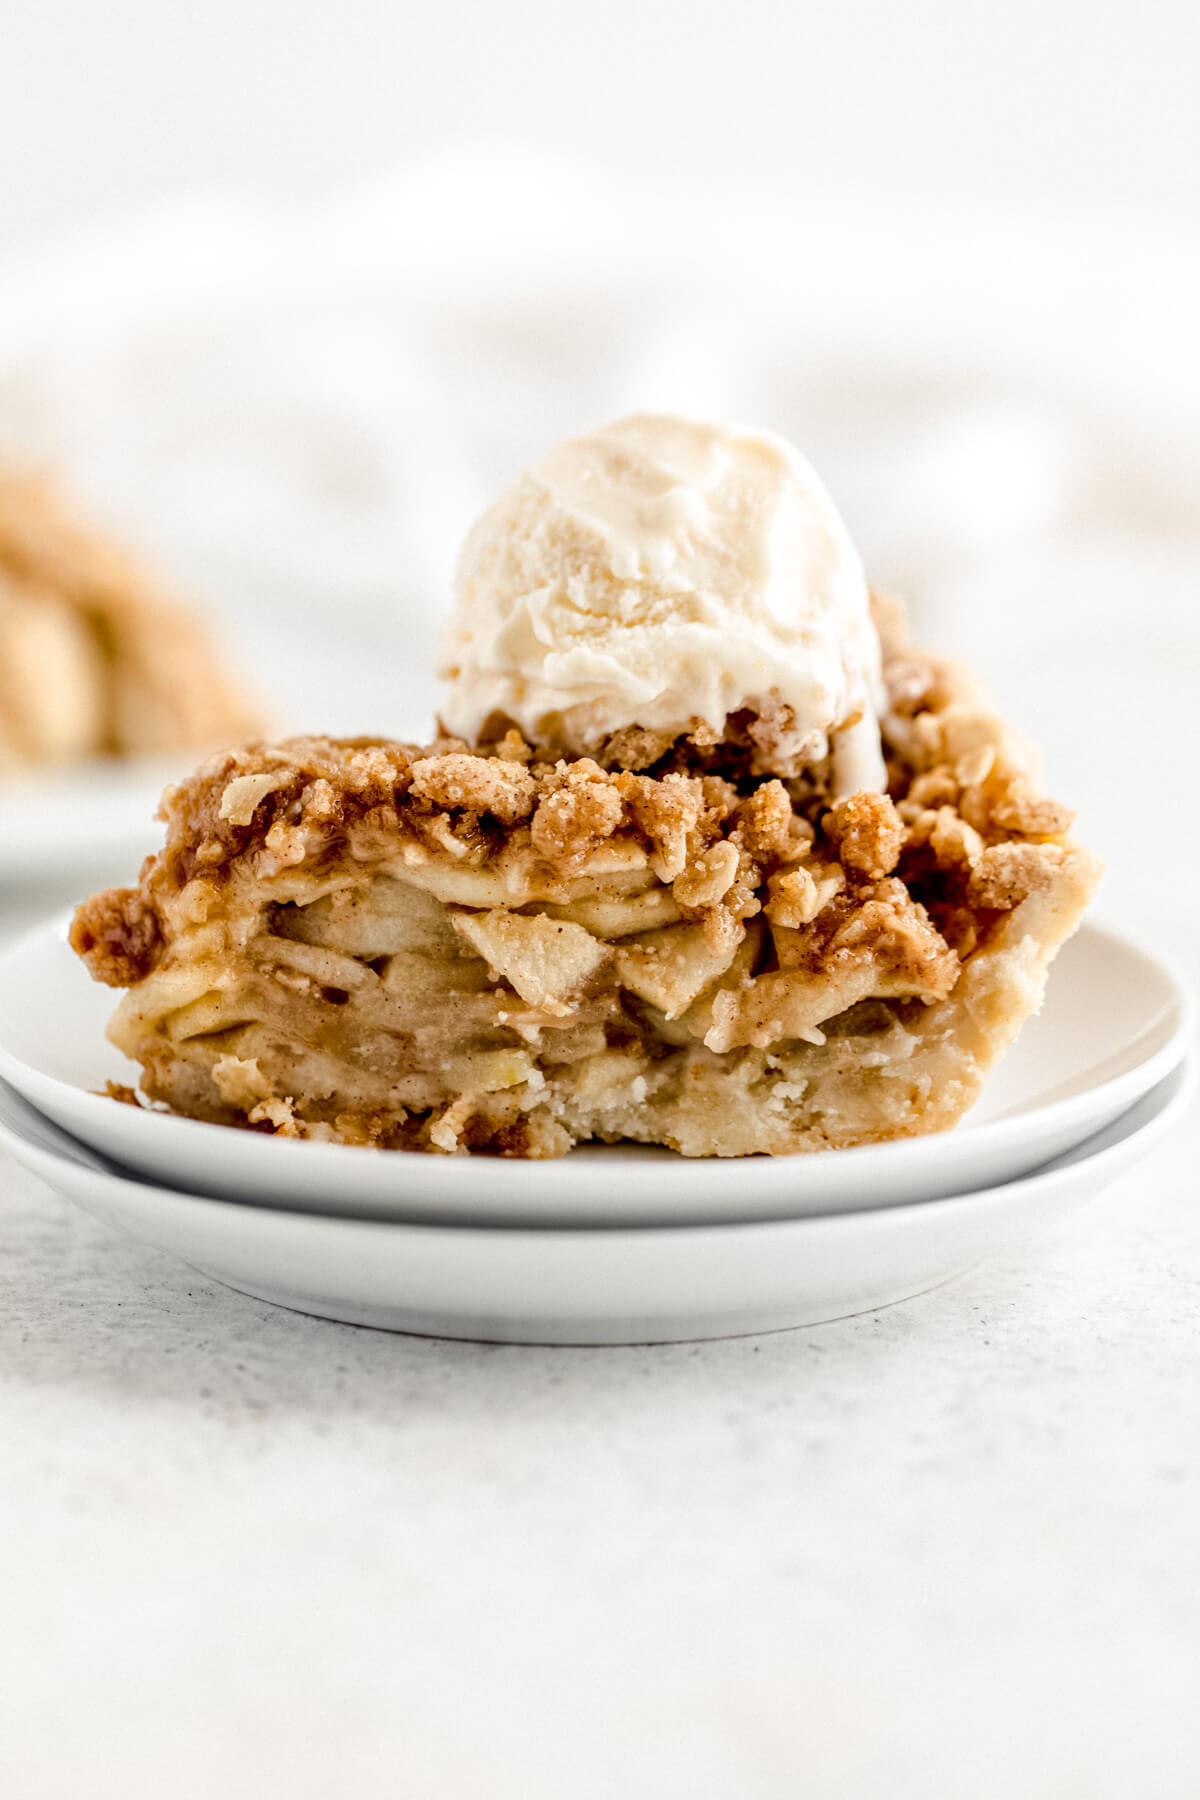 slice of apple pie topped with crumble and vanilla ice cream